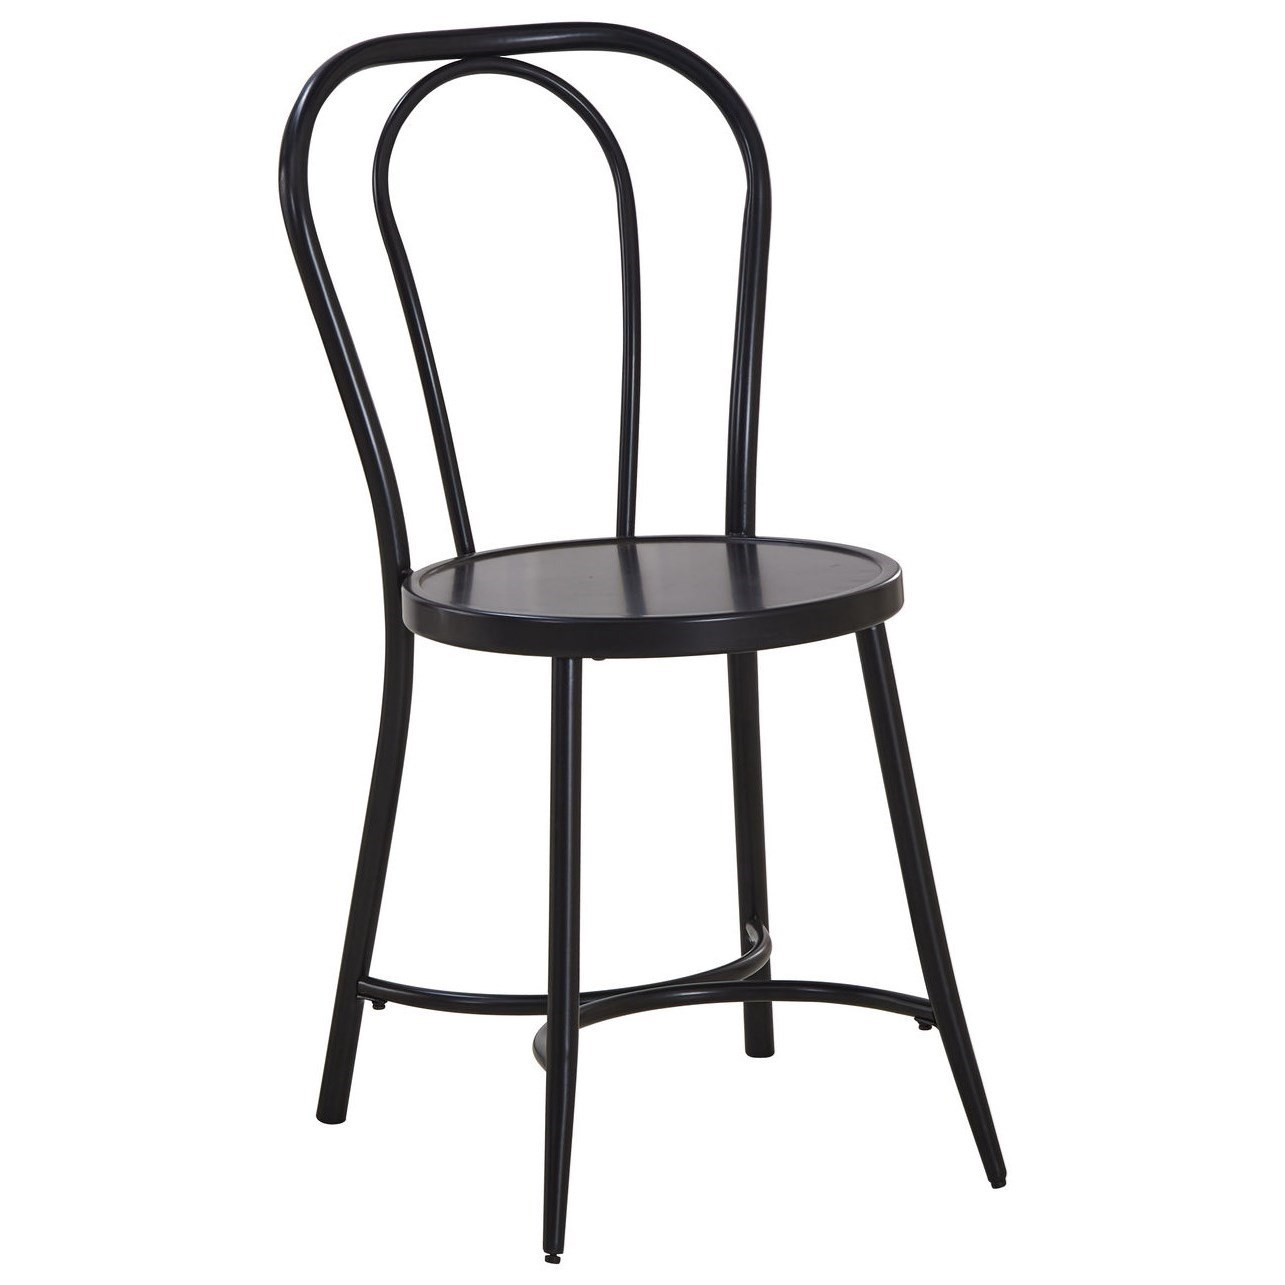 Claire Dining Side Chair by Steve Silver at Standard Furniture